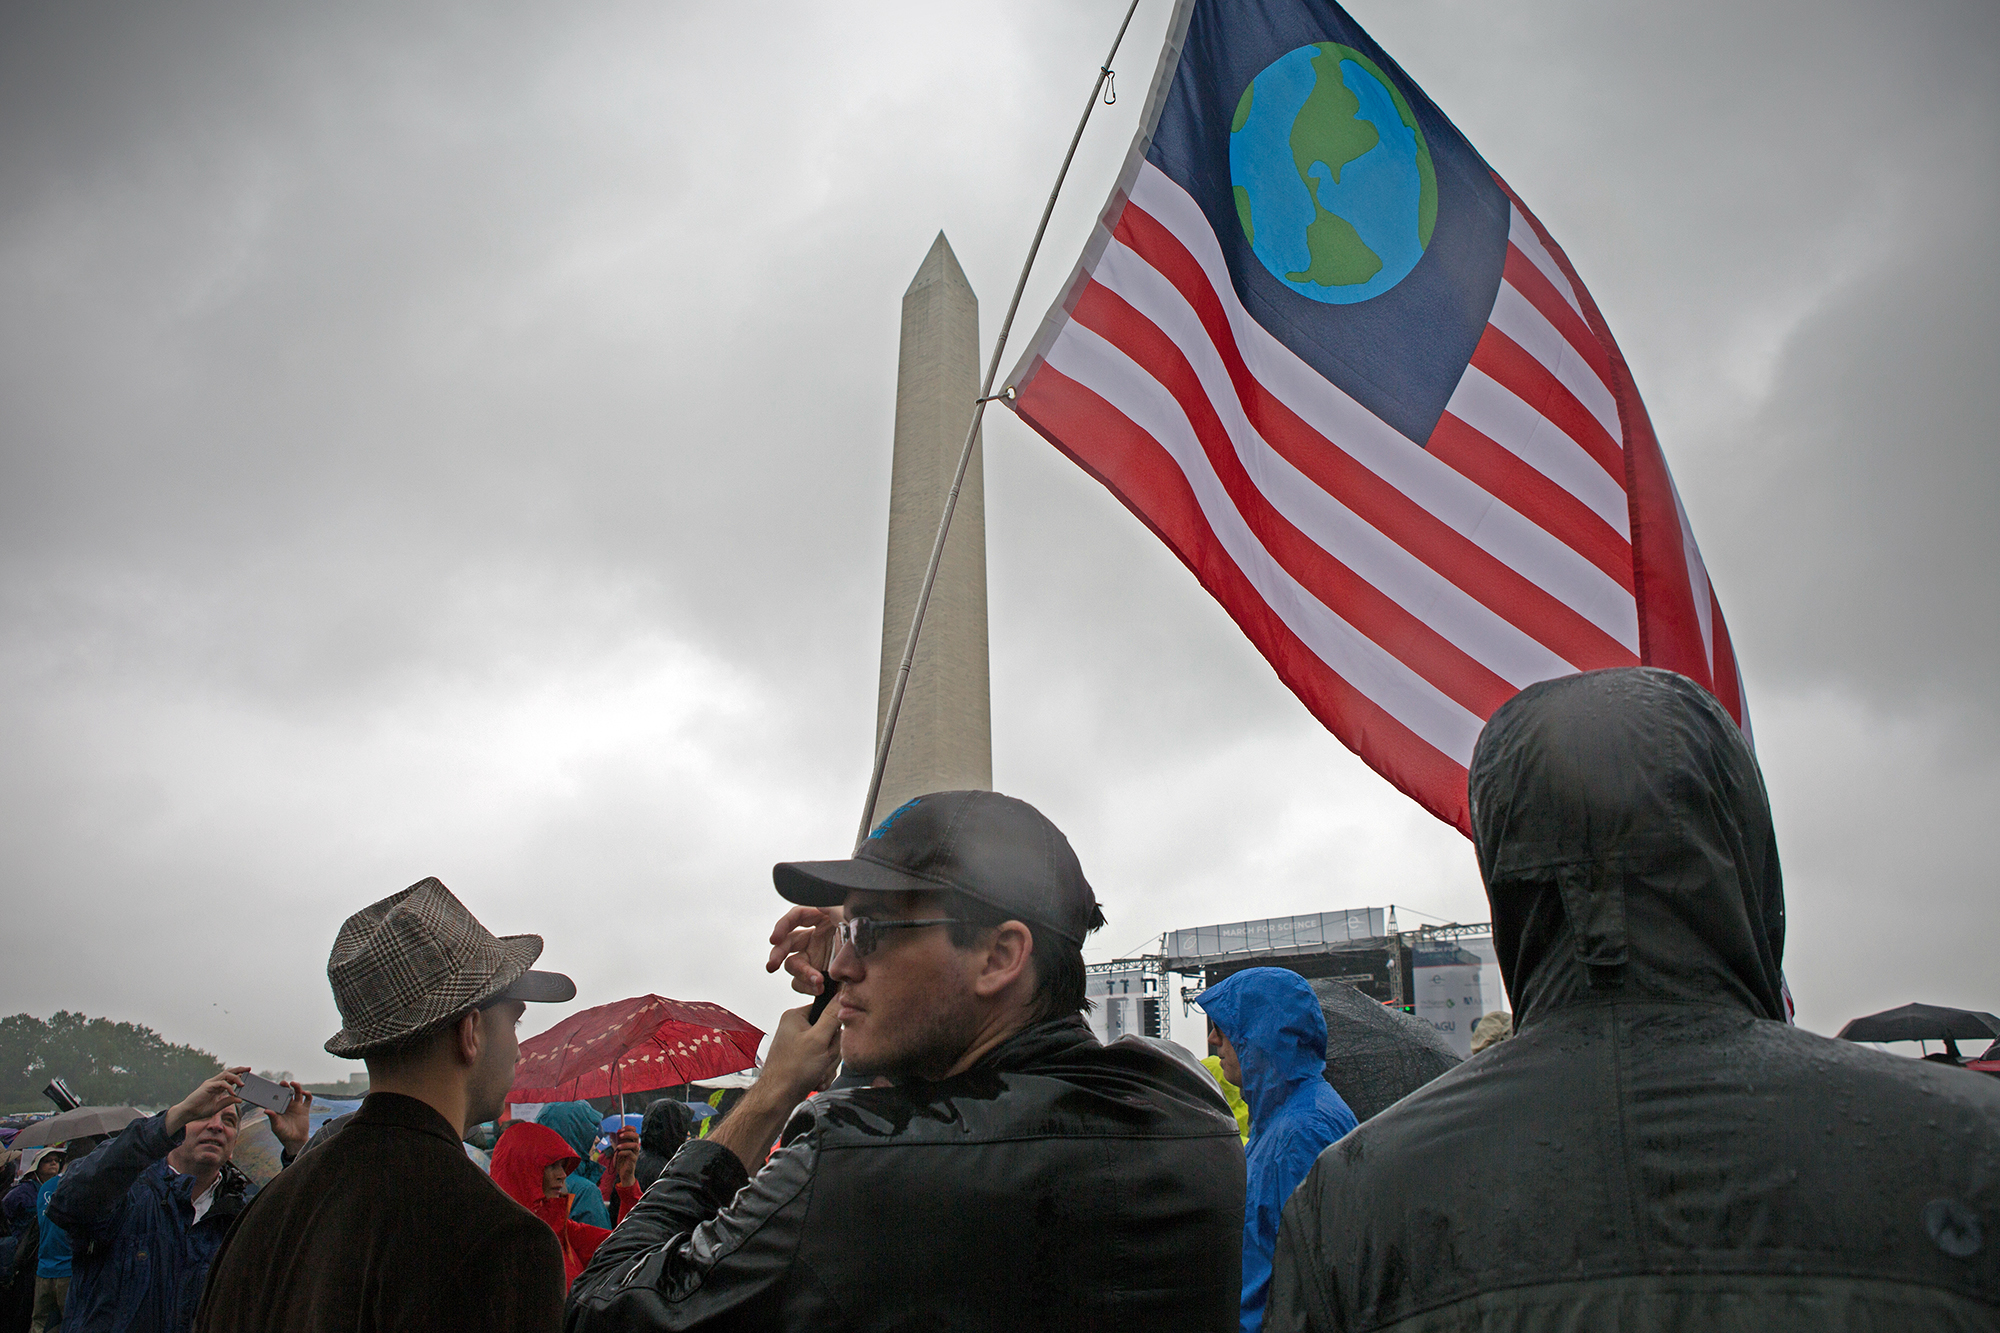 Daniel King waves a flag at Science March in Washington, D.C.